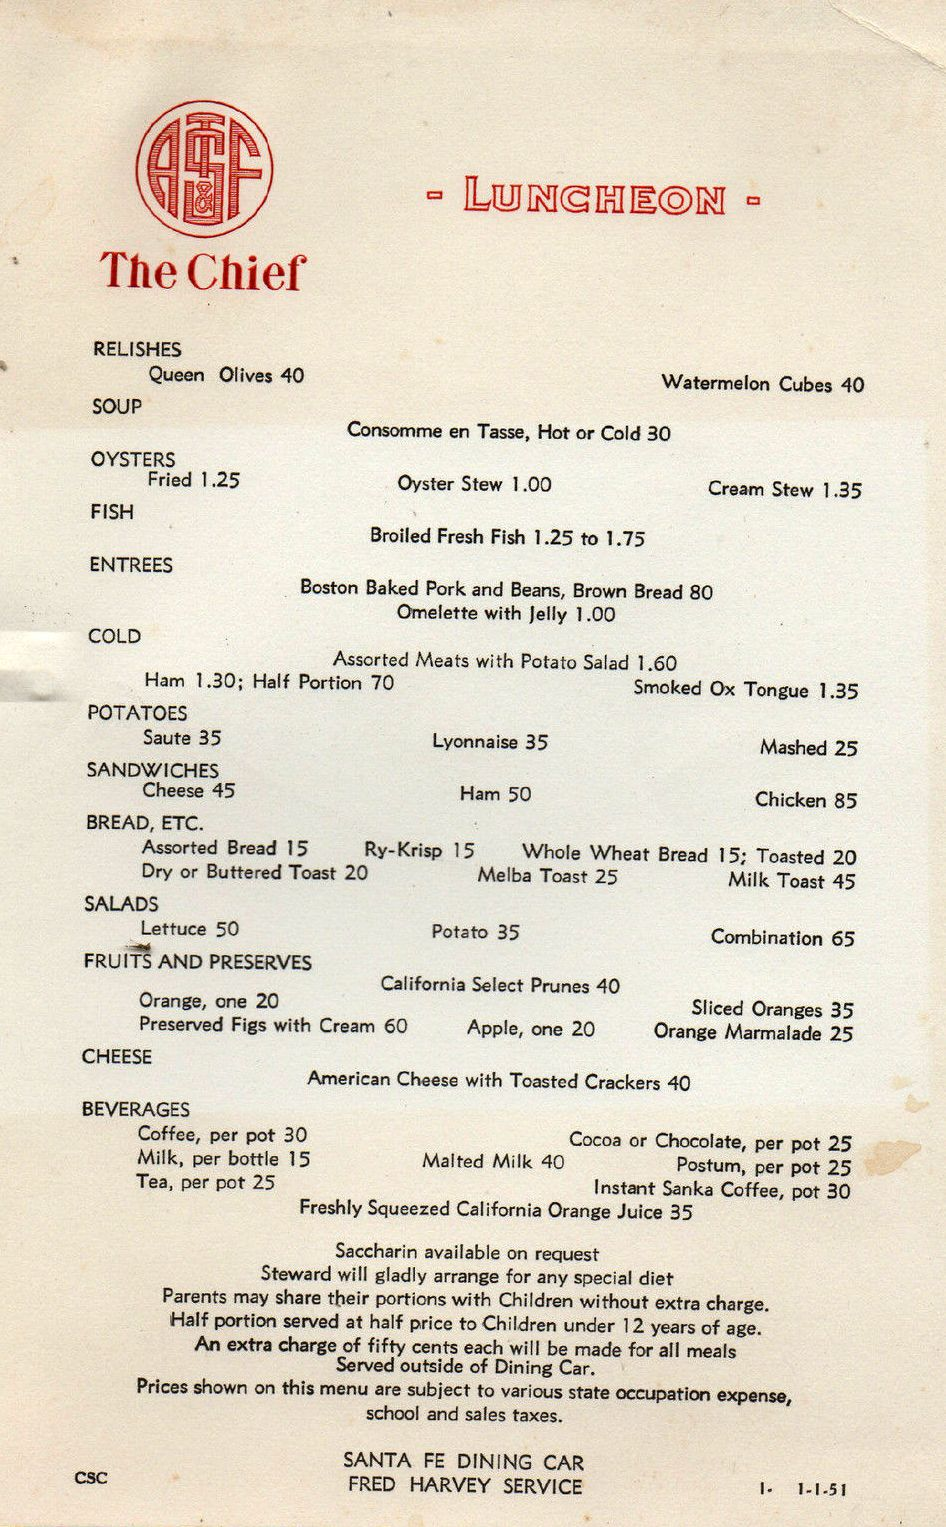 Dining Menu 1951 Lunch Menu From The Santa Fe Railroad Dining Car The Chief